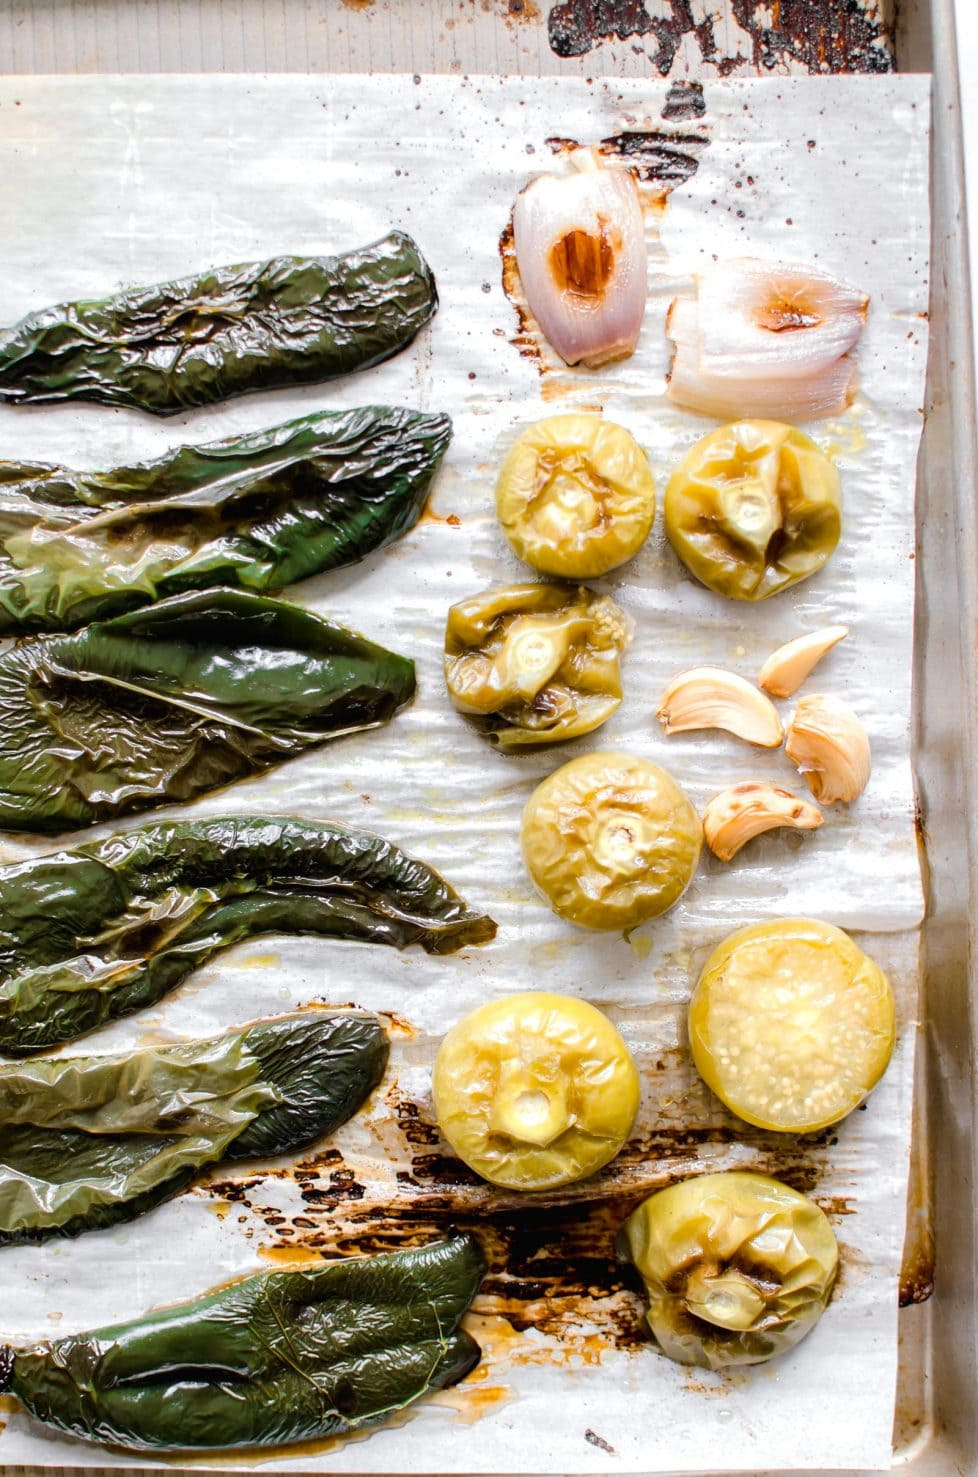 This easy recipe for Roasted Poblano Smother Sauce is a fresh, Mexican-inspired sauce that you can use to top enchiladas, tamales, tacos, burritos, omelets, nachos, and more! It's filled with roasted poblano peppers, tomatillos, aromatics, and fresh herbs!